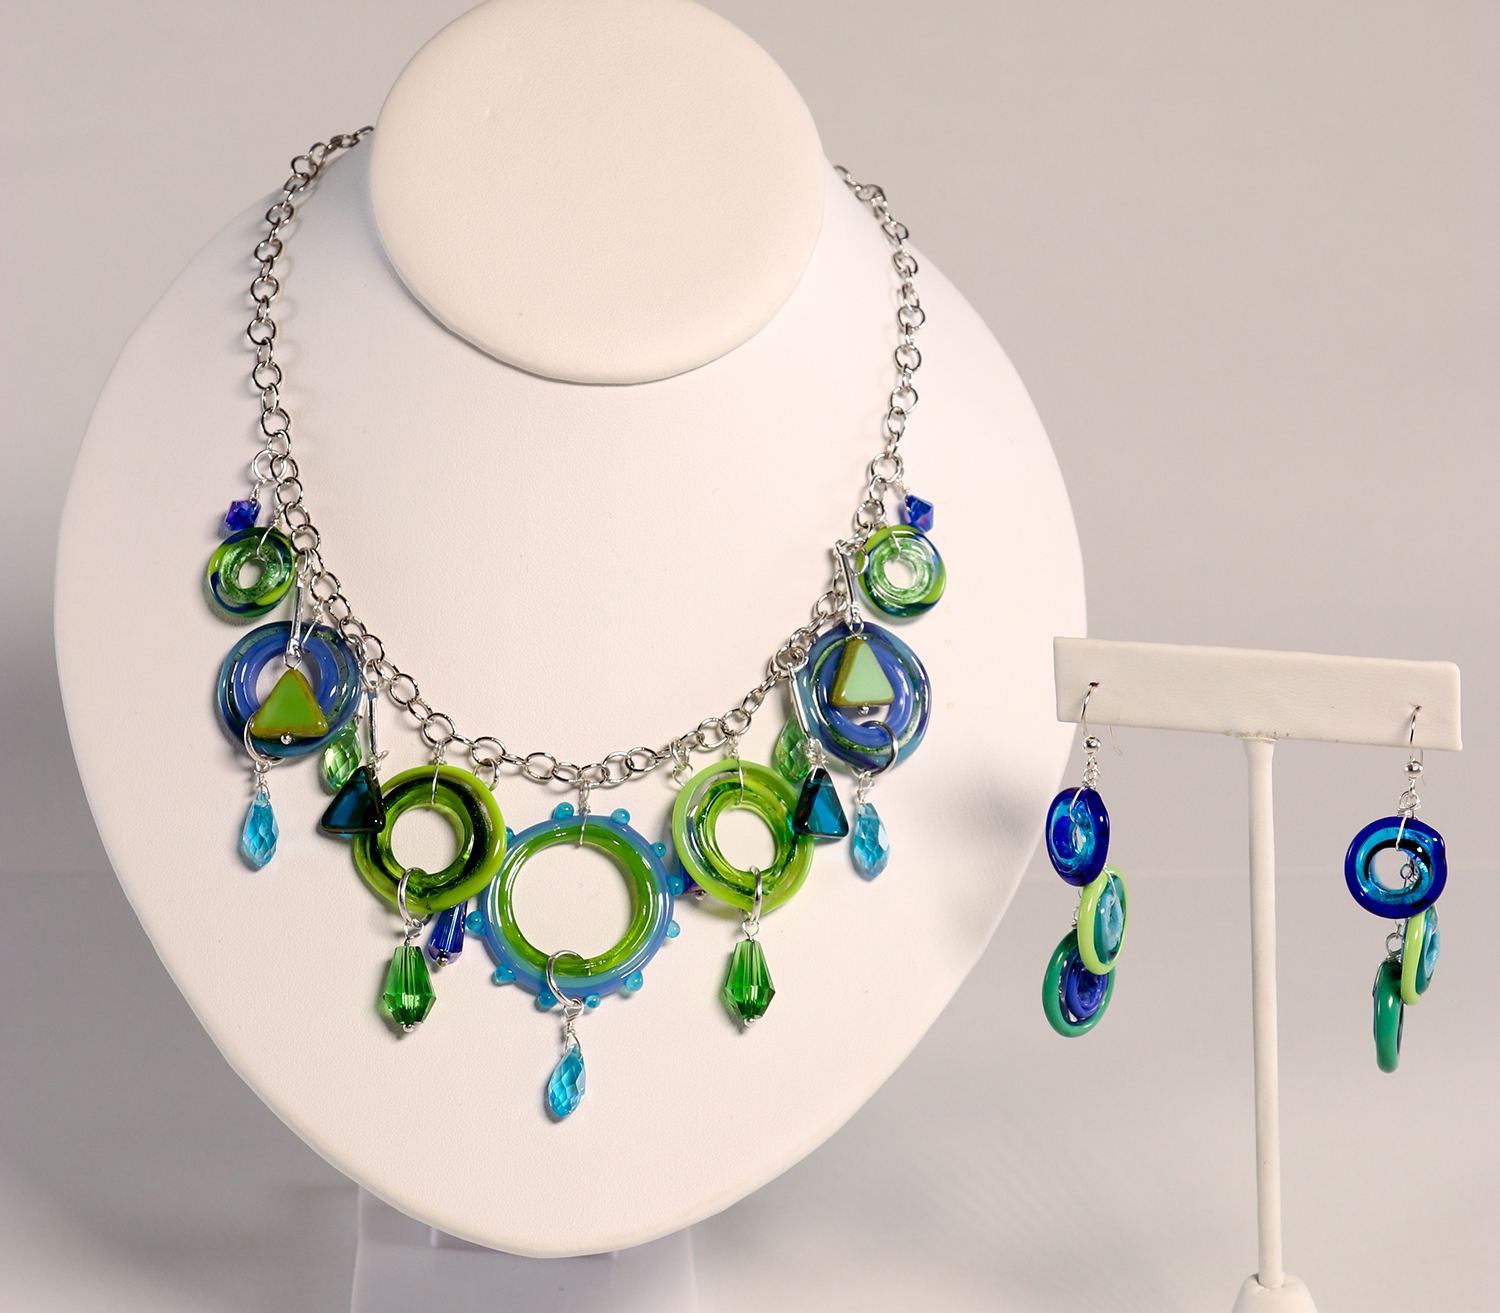 McNay Museum Store Trunk Show: Susan Butler Glass Jewelry